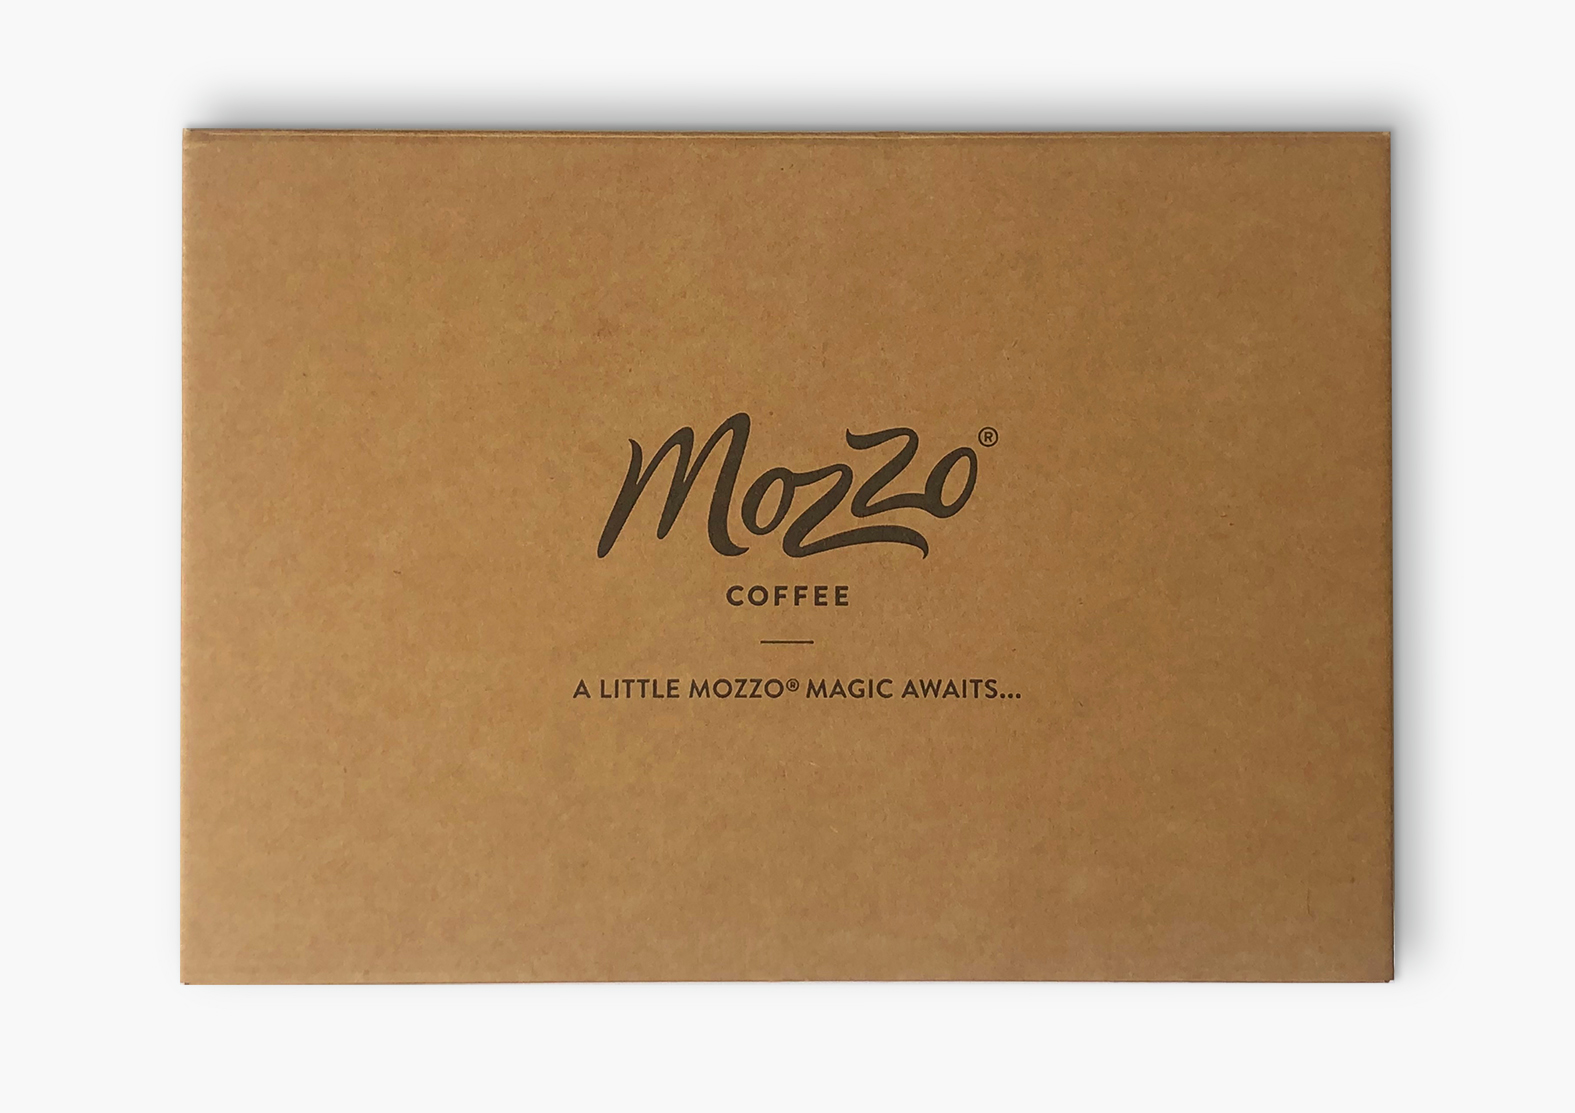 Mozzo_Coffee_Strong_and_Together_Capsule_Design_06.jpg